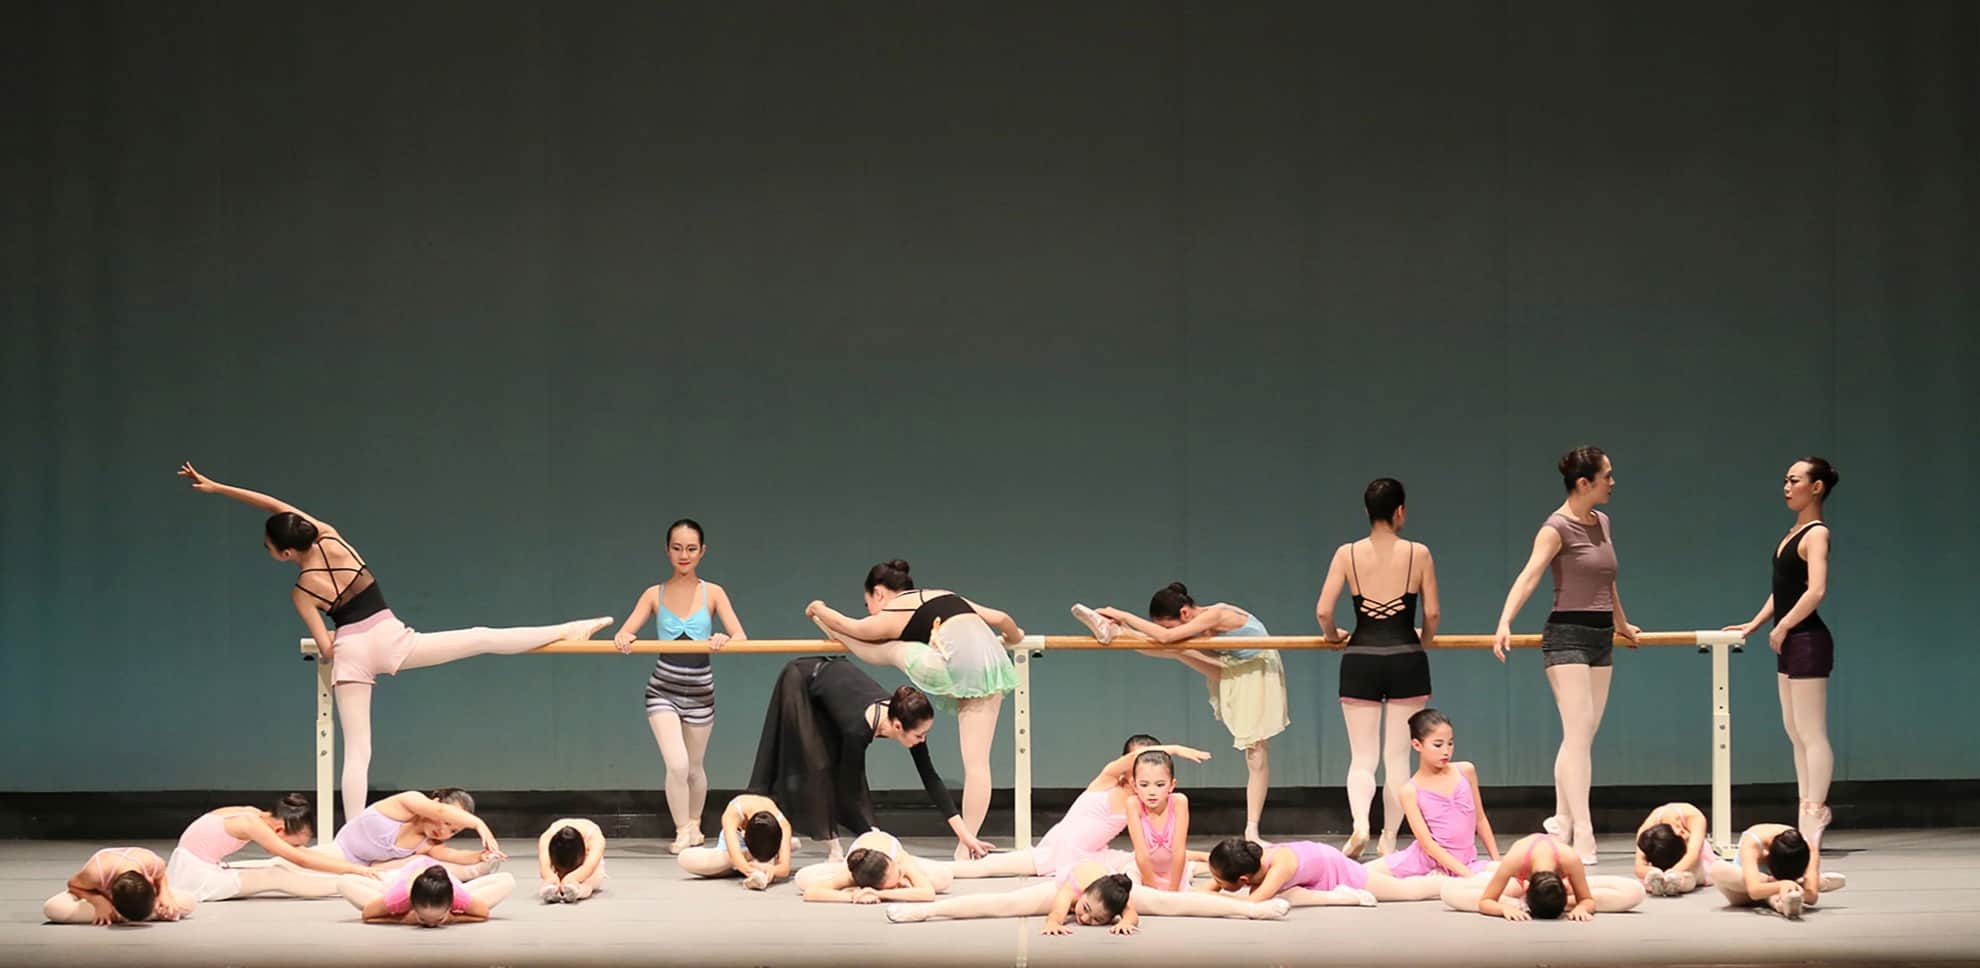 miki ballet academy students on stage